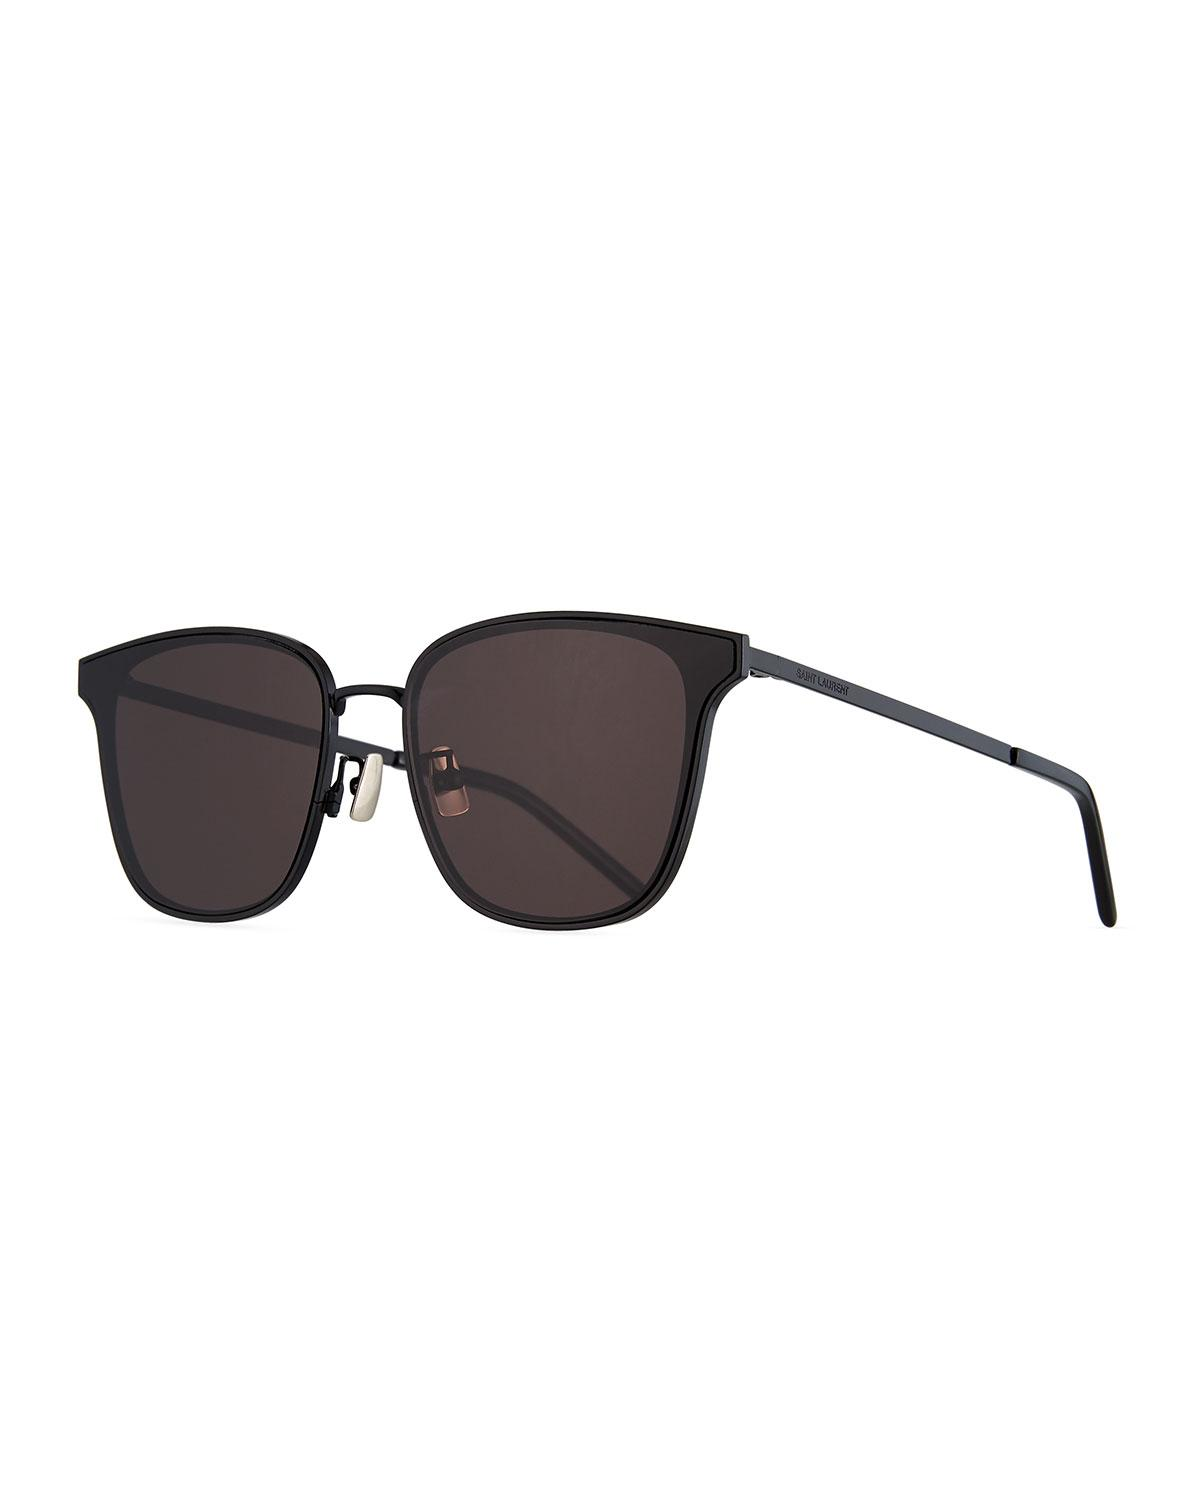 96b5de984c55 Saint Laurent. Black Men s Sl272 Metal Sunglasses - Solid Lenses.  450 From Neiman  Marcus